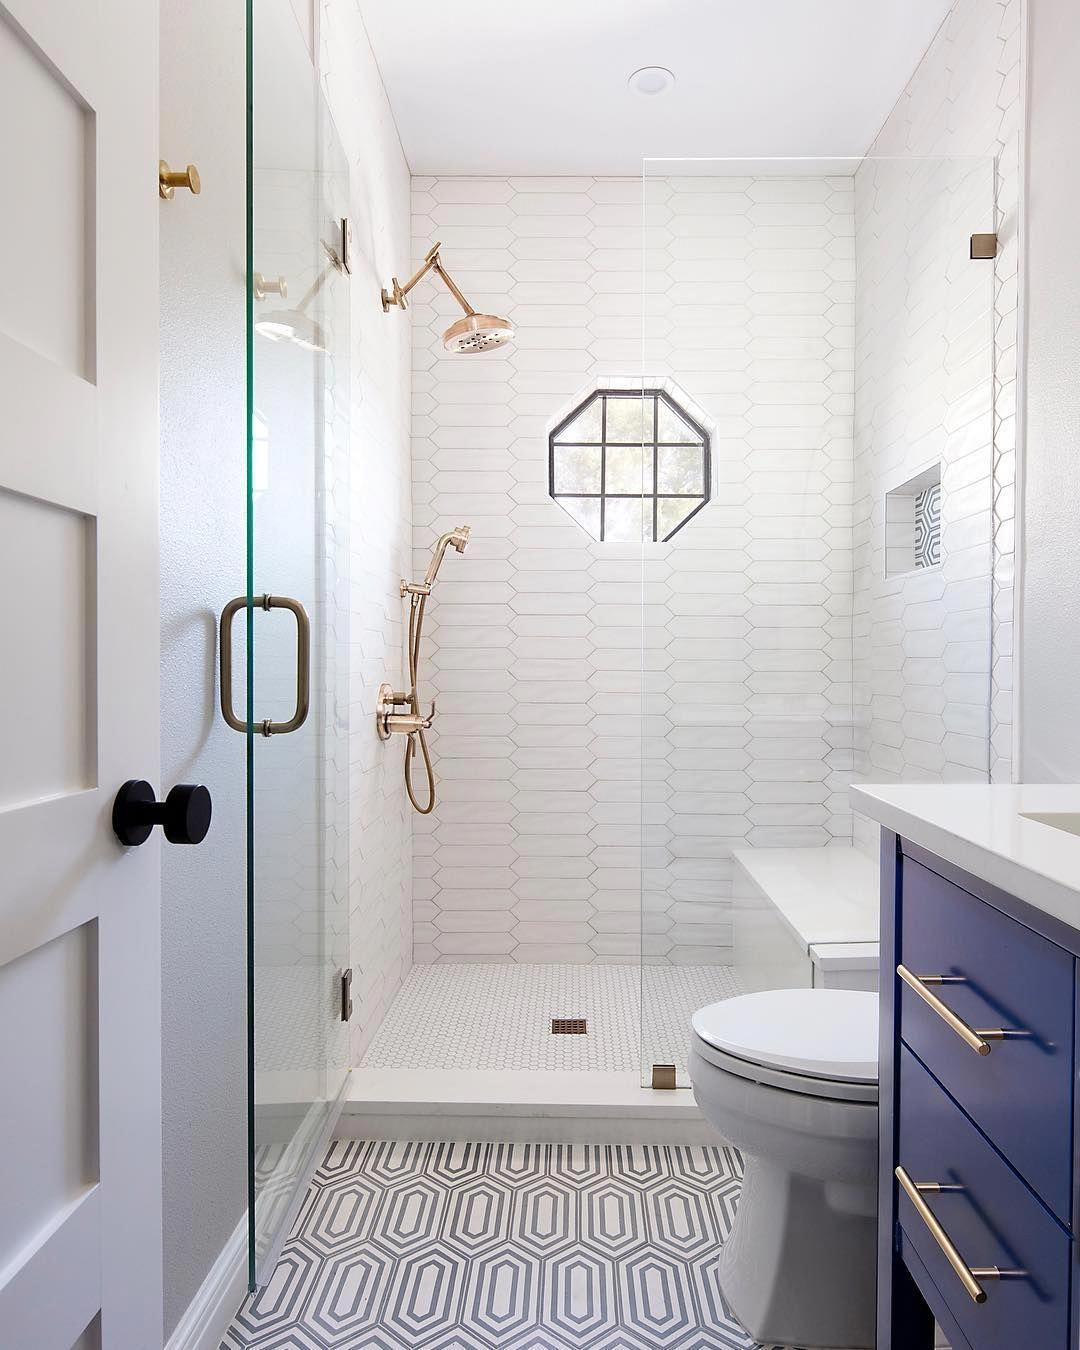 Take A Look At This Important Pic As Well As Take A Look At Today Points On Bathrooms Remodel Smal Bathrooms Remodel Small Bathroom Remodel Tiny House Bathroom